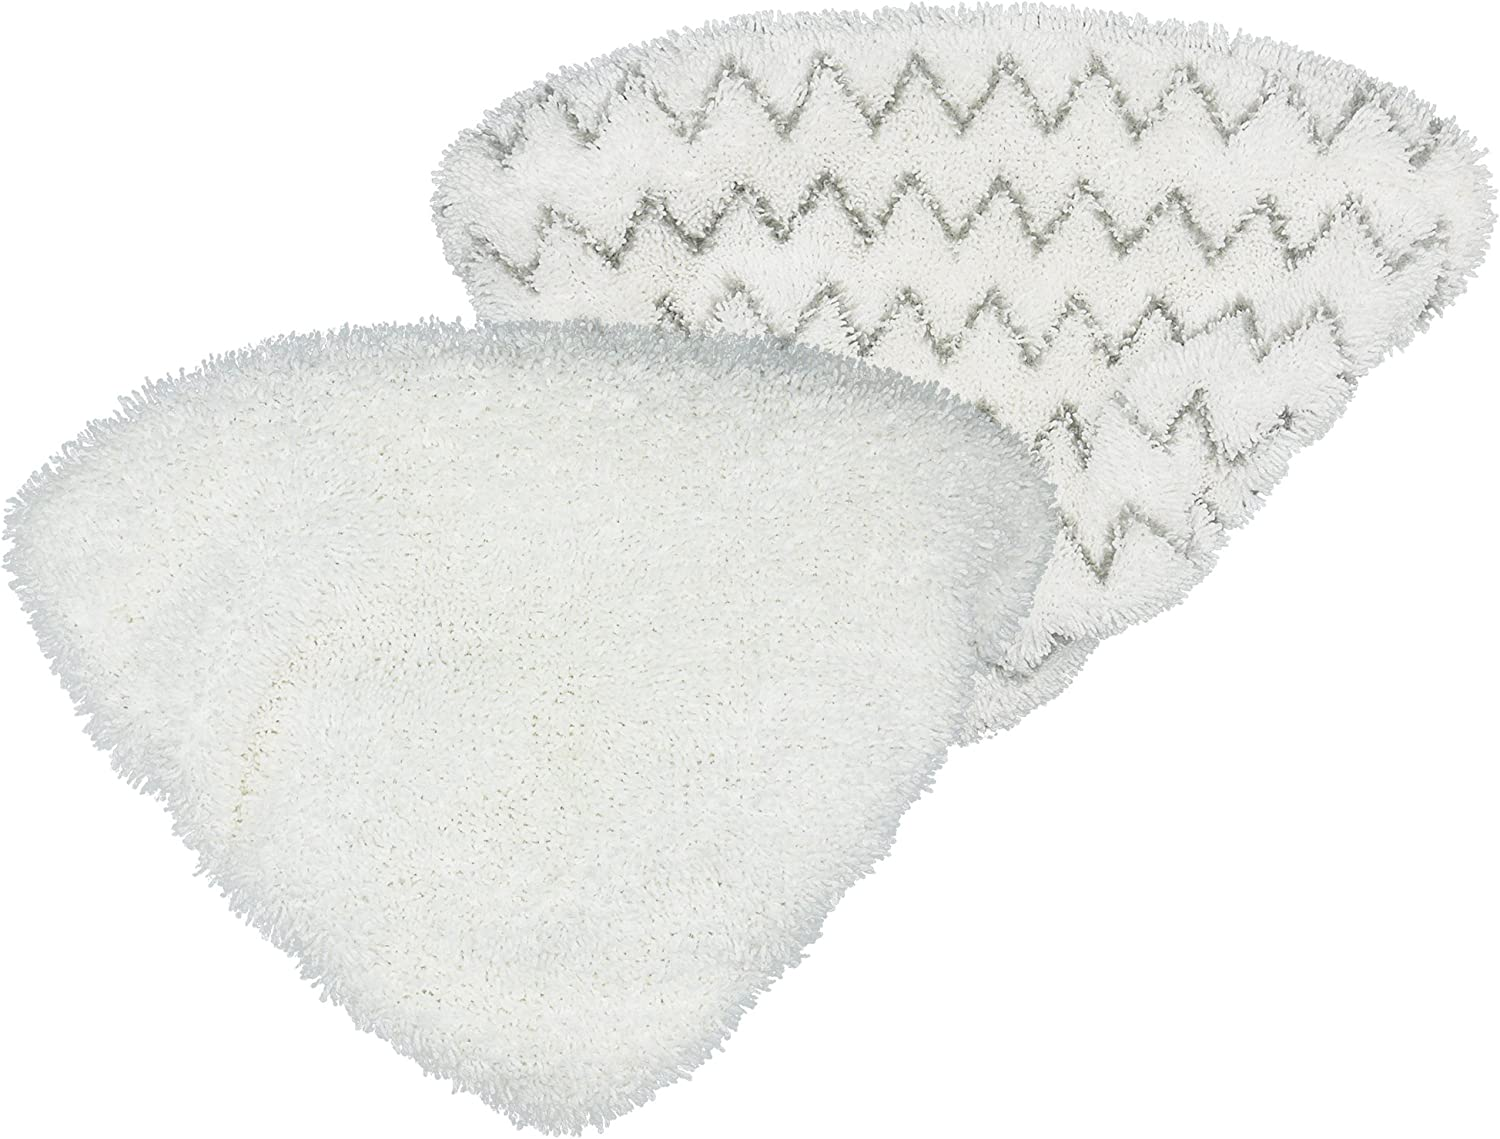 2 Soft + 2 Scrubby N//T Yweller Replacement Washable Steam Mop Pads Compatible with issell PowerEdge Lift Off 2-in-1 Series 2078 20781 2165 Steam Mop Cleaner 4 Pack